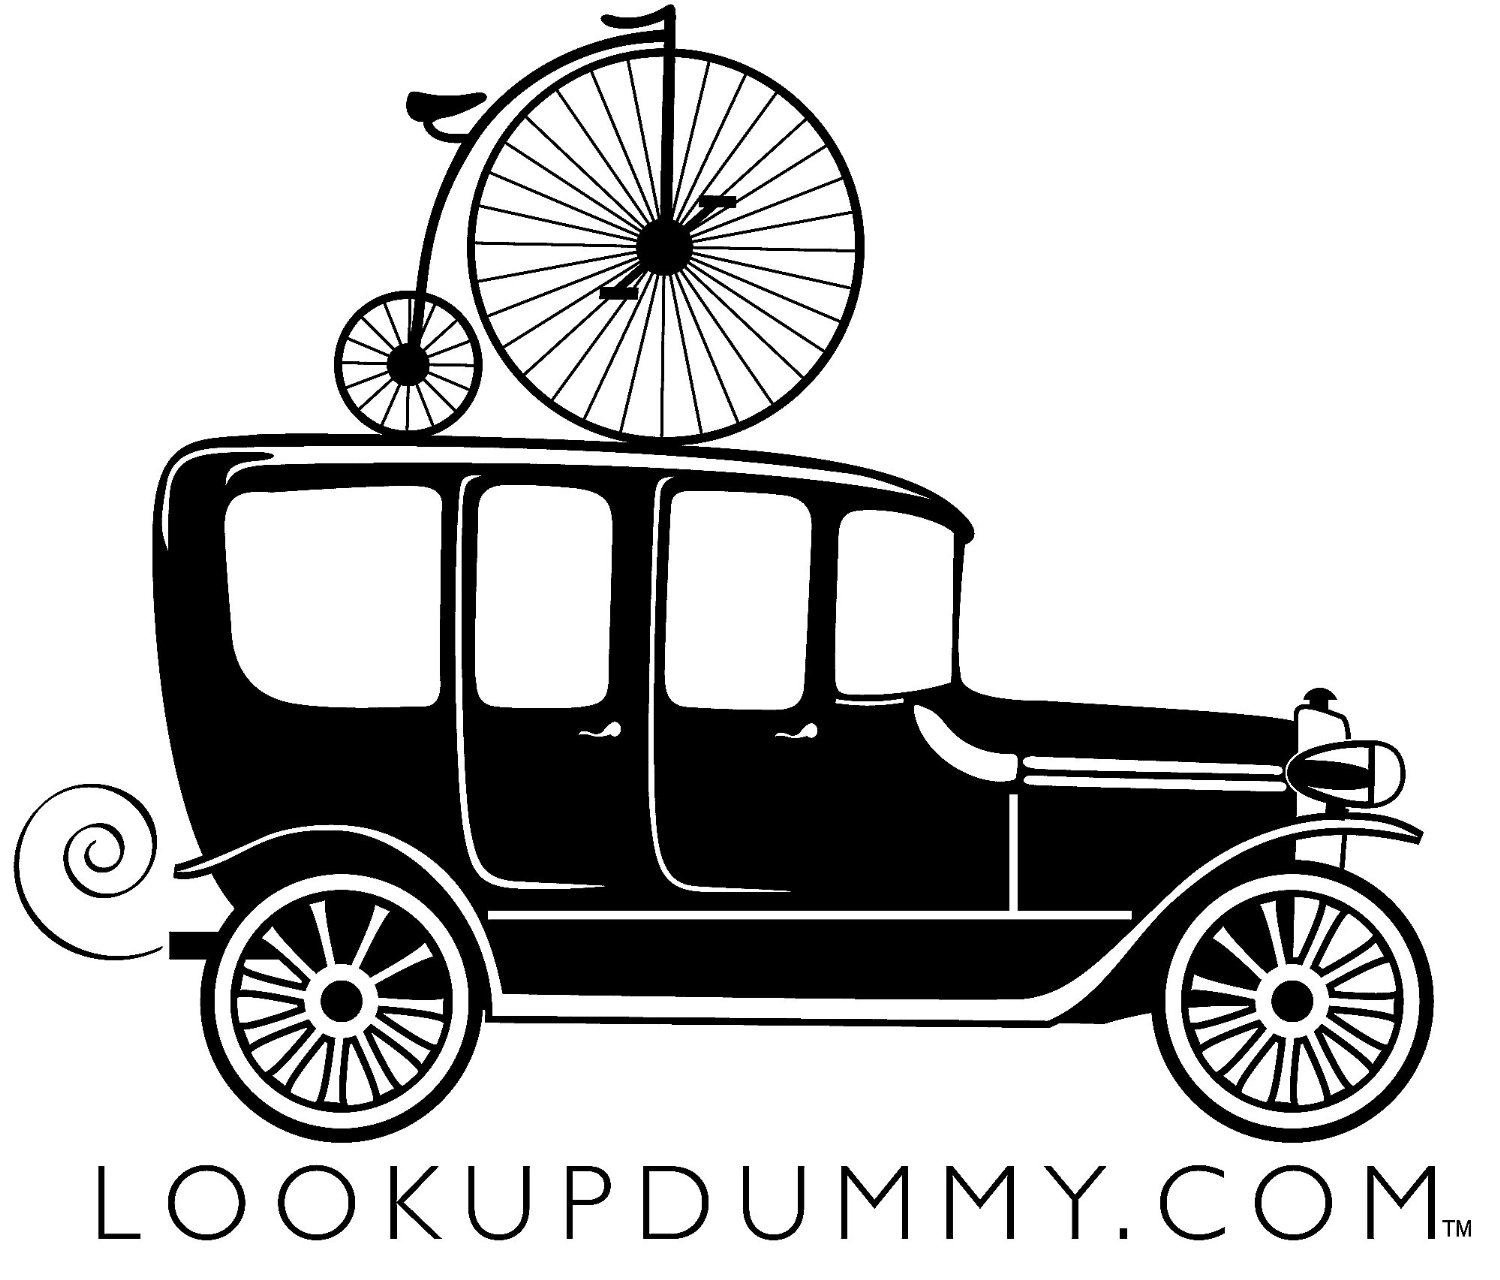 Old Car - Bike Roof Rack and Bike Rear Rack Windshield Reminder and Warning System - A Non-Adhesive Removable and Reusable Vinyl Window Cling - Save Your Bike Car and Rack from Damage!